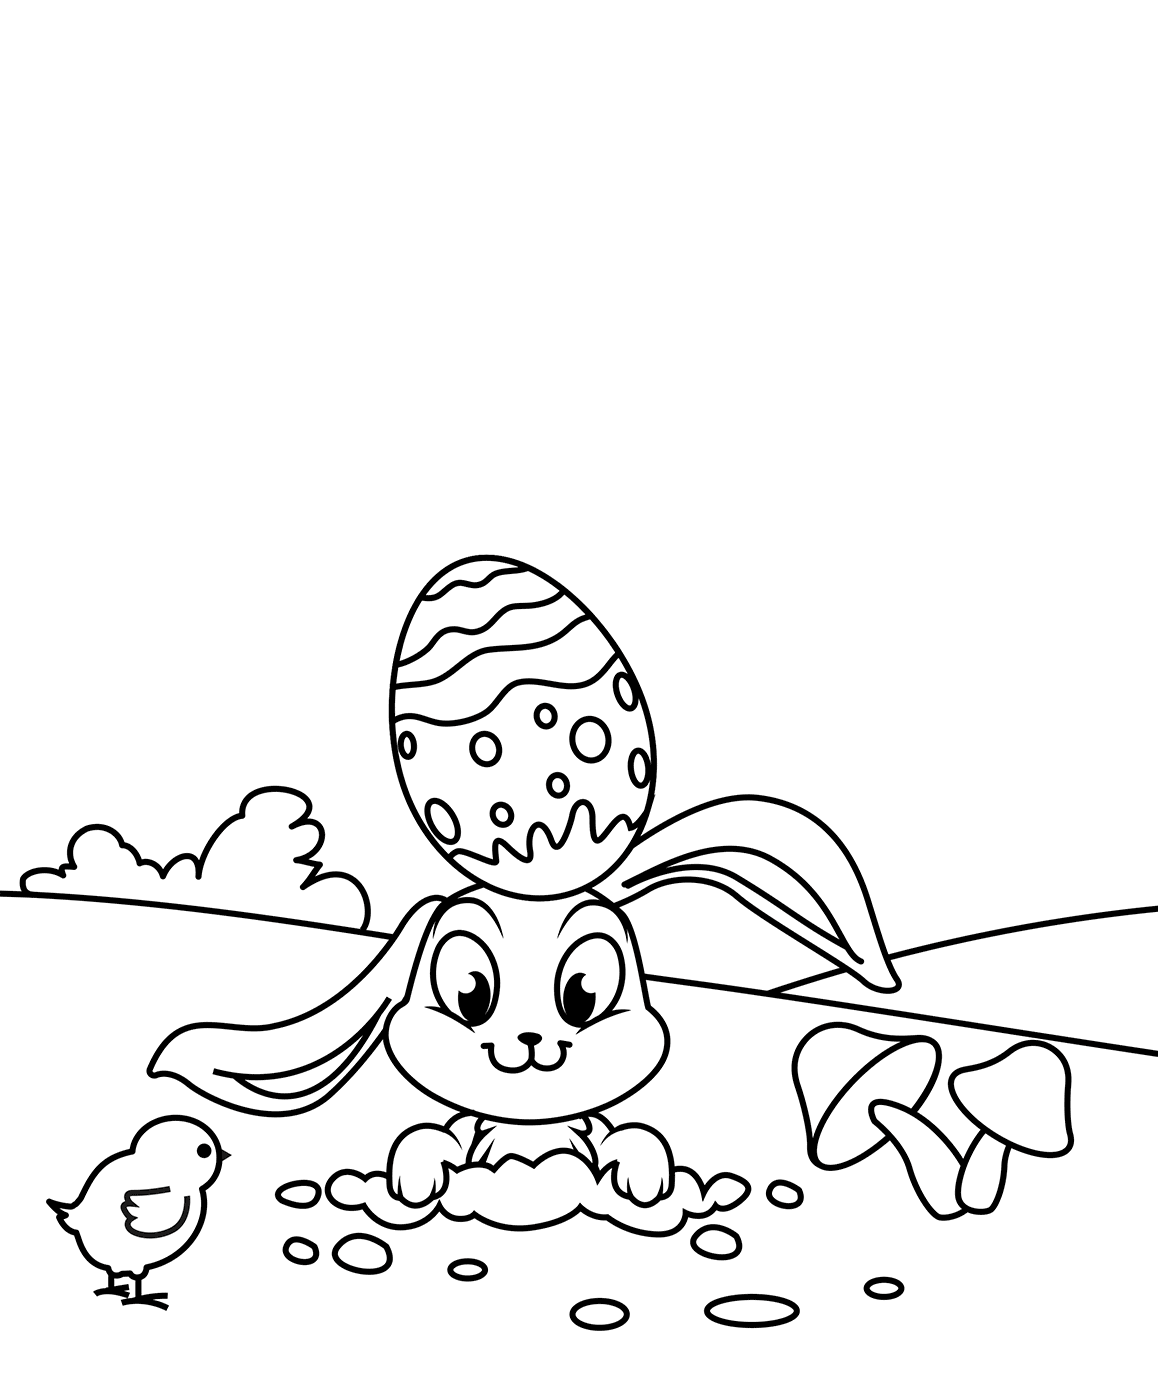 easter chick colouring 20 free easter chick coloring pages printable easter colouring chick